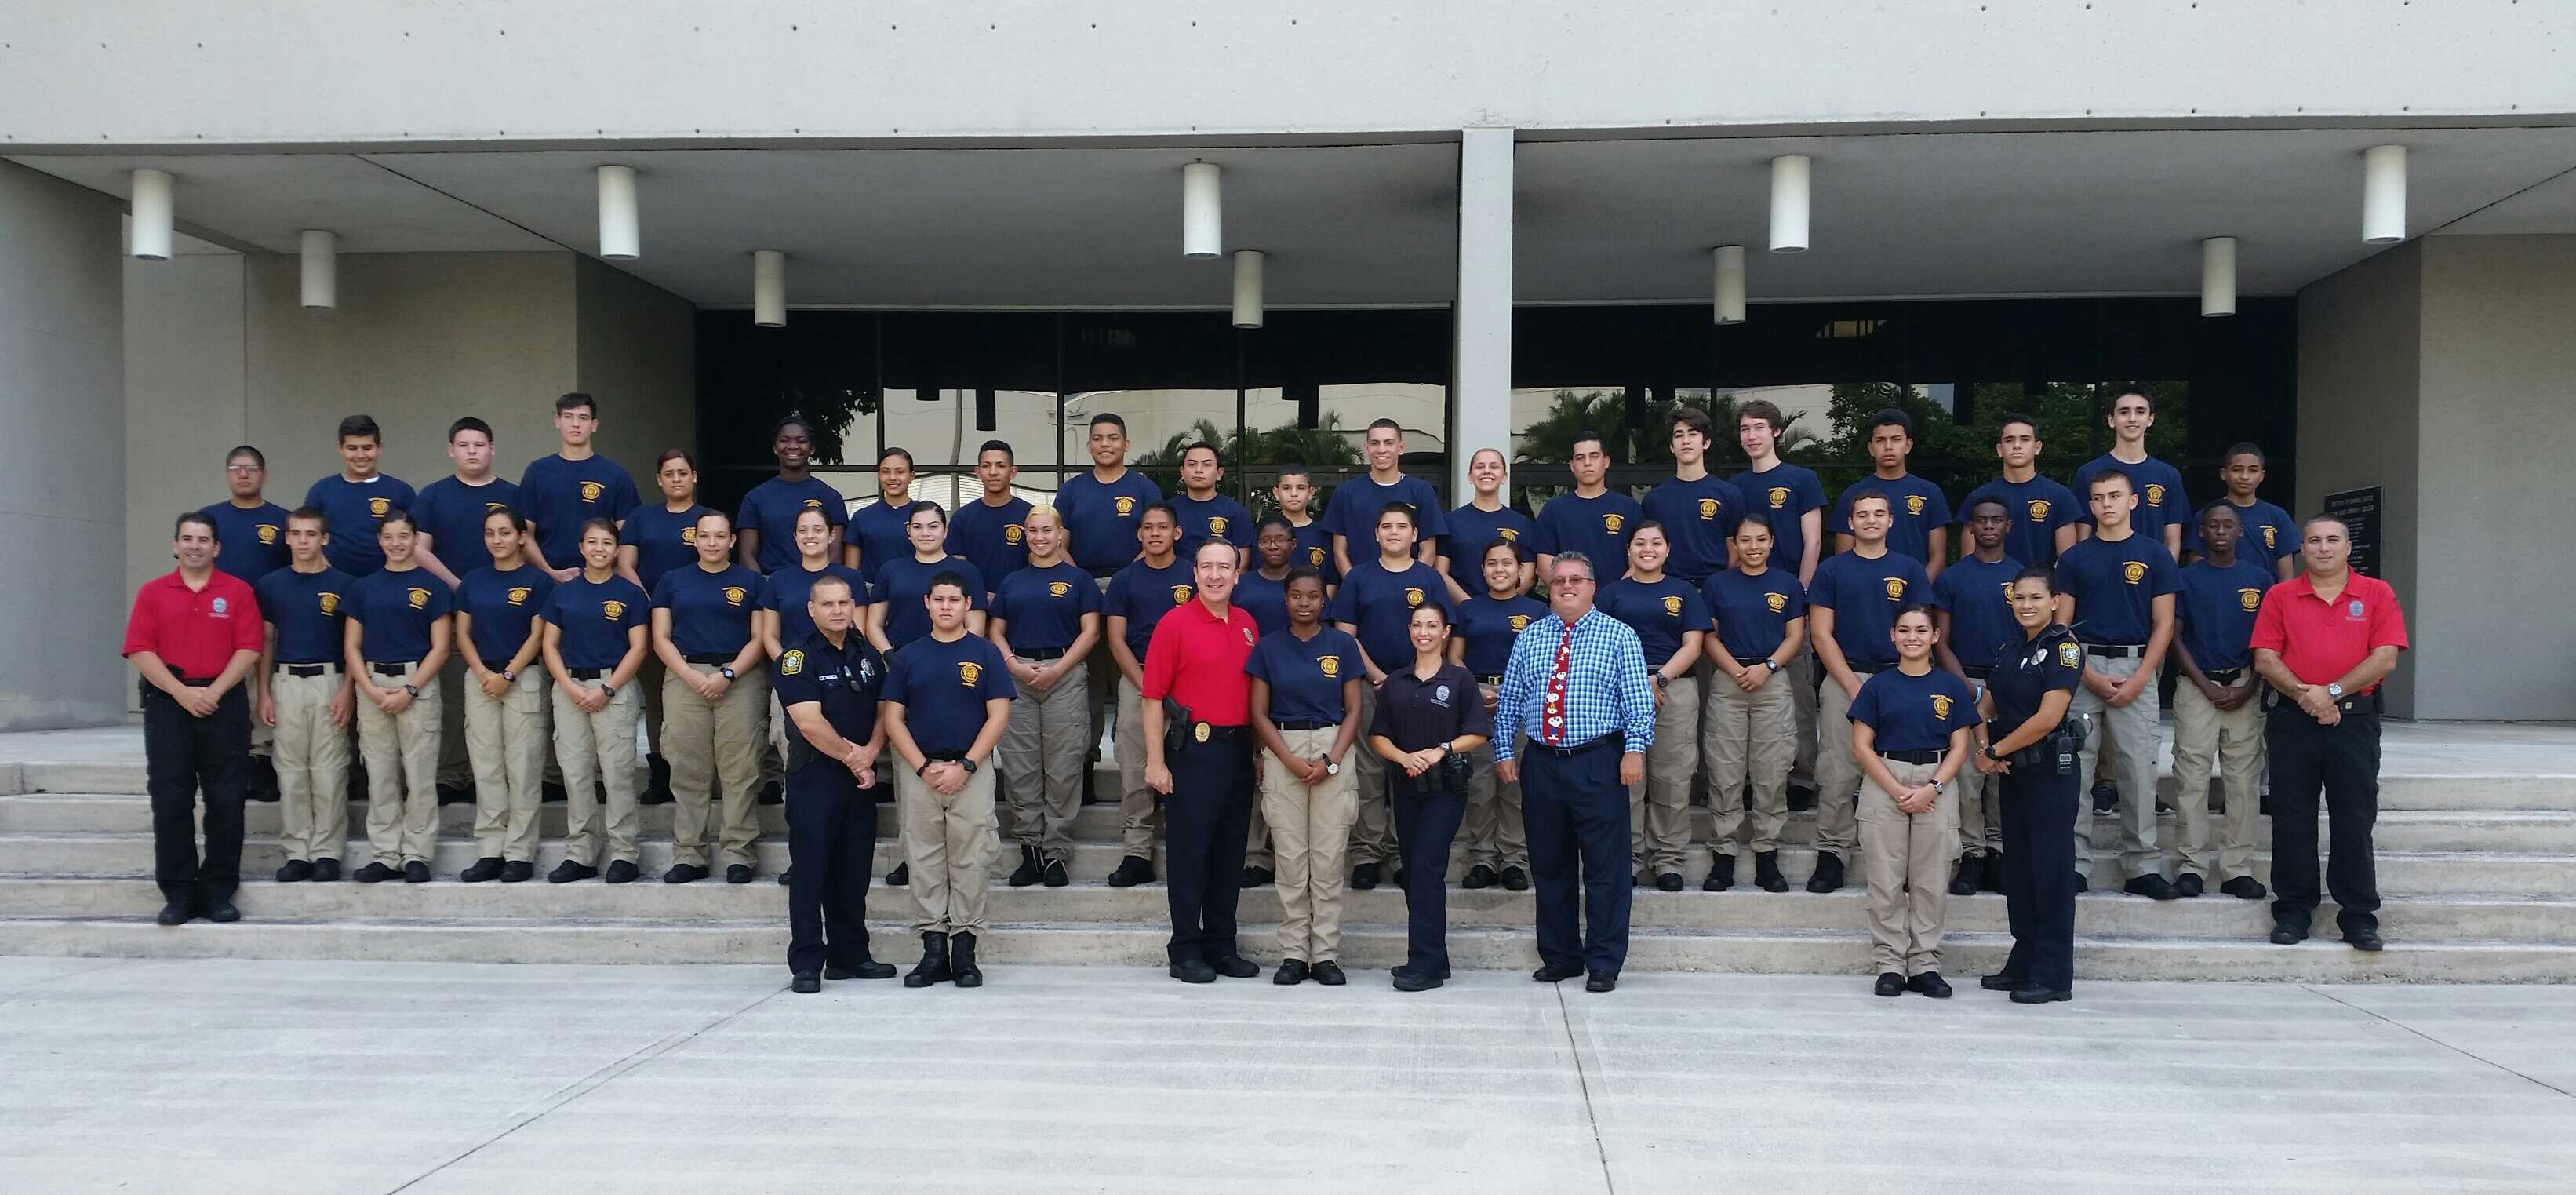 POLICE EXPLORER PROGRAM | MiamiSchoolsPD com